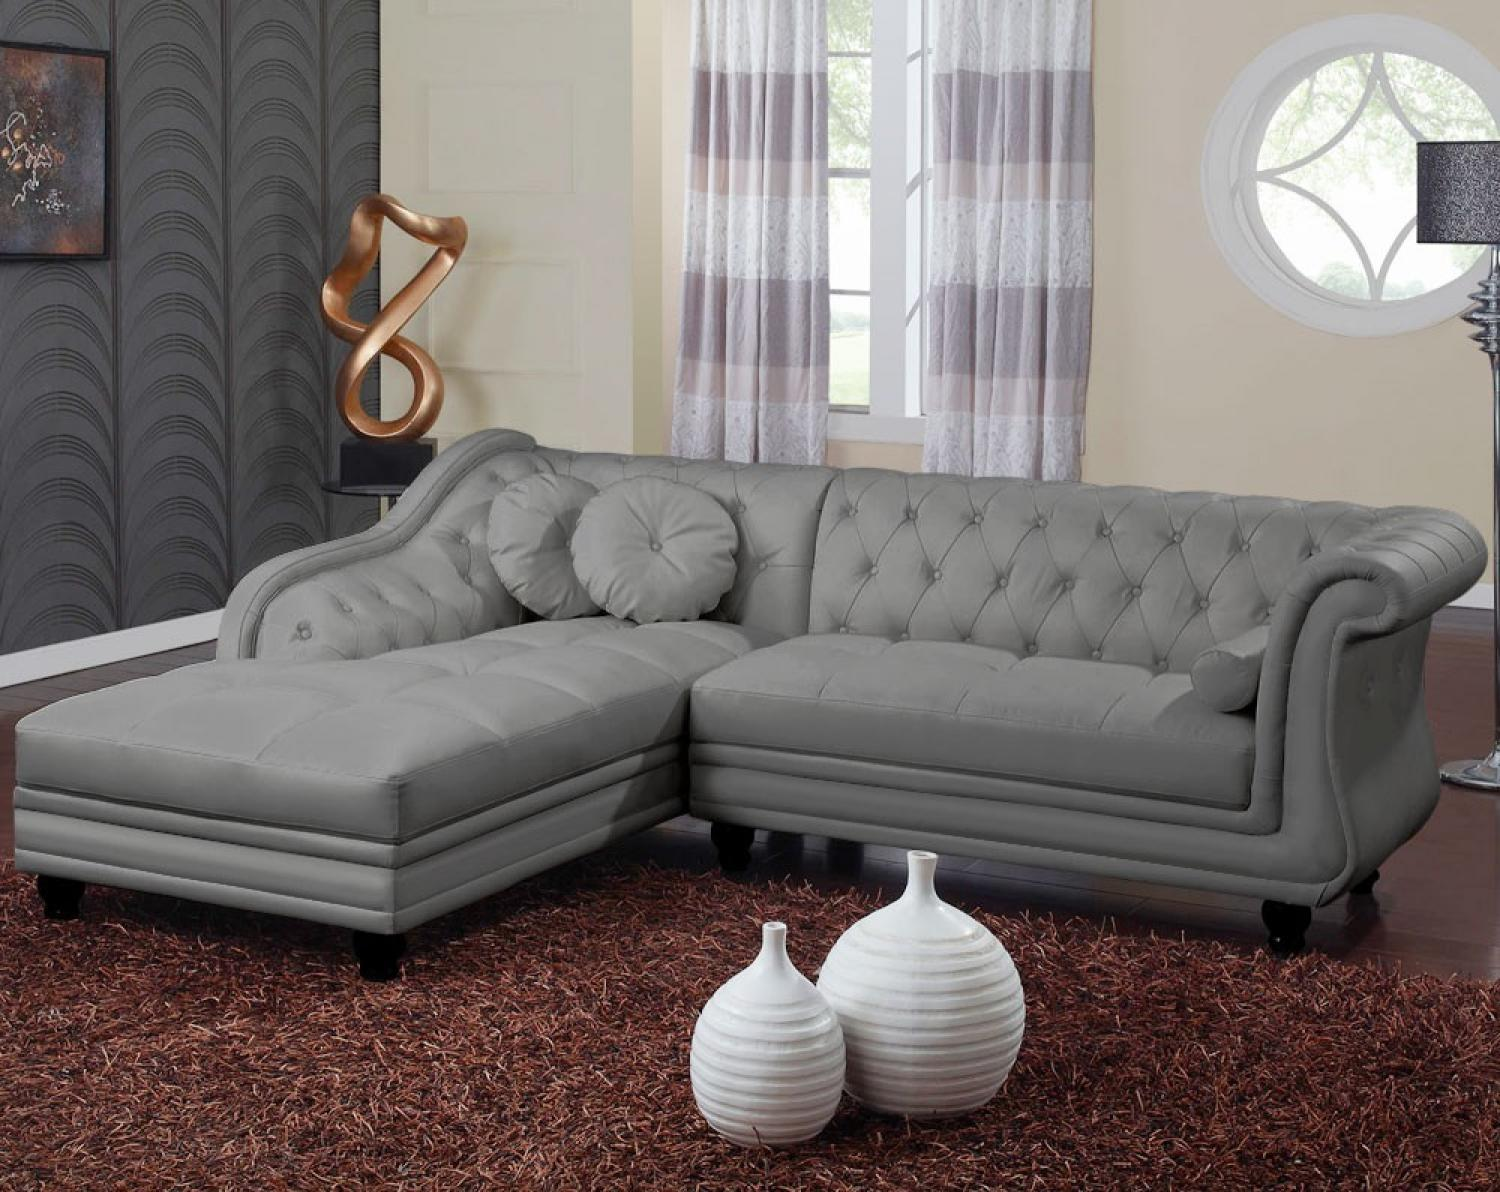 Photos canap m ridienne chesterfield - Canape chesterfield cuir gris ...